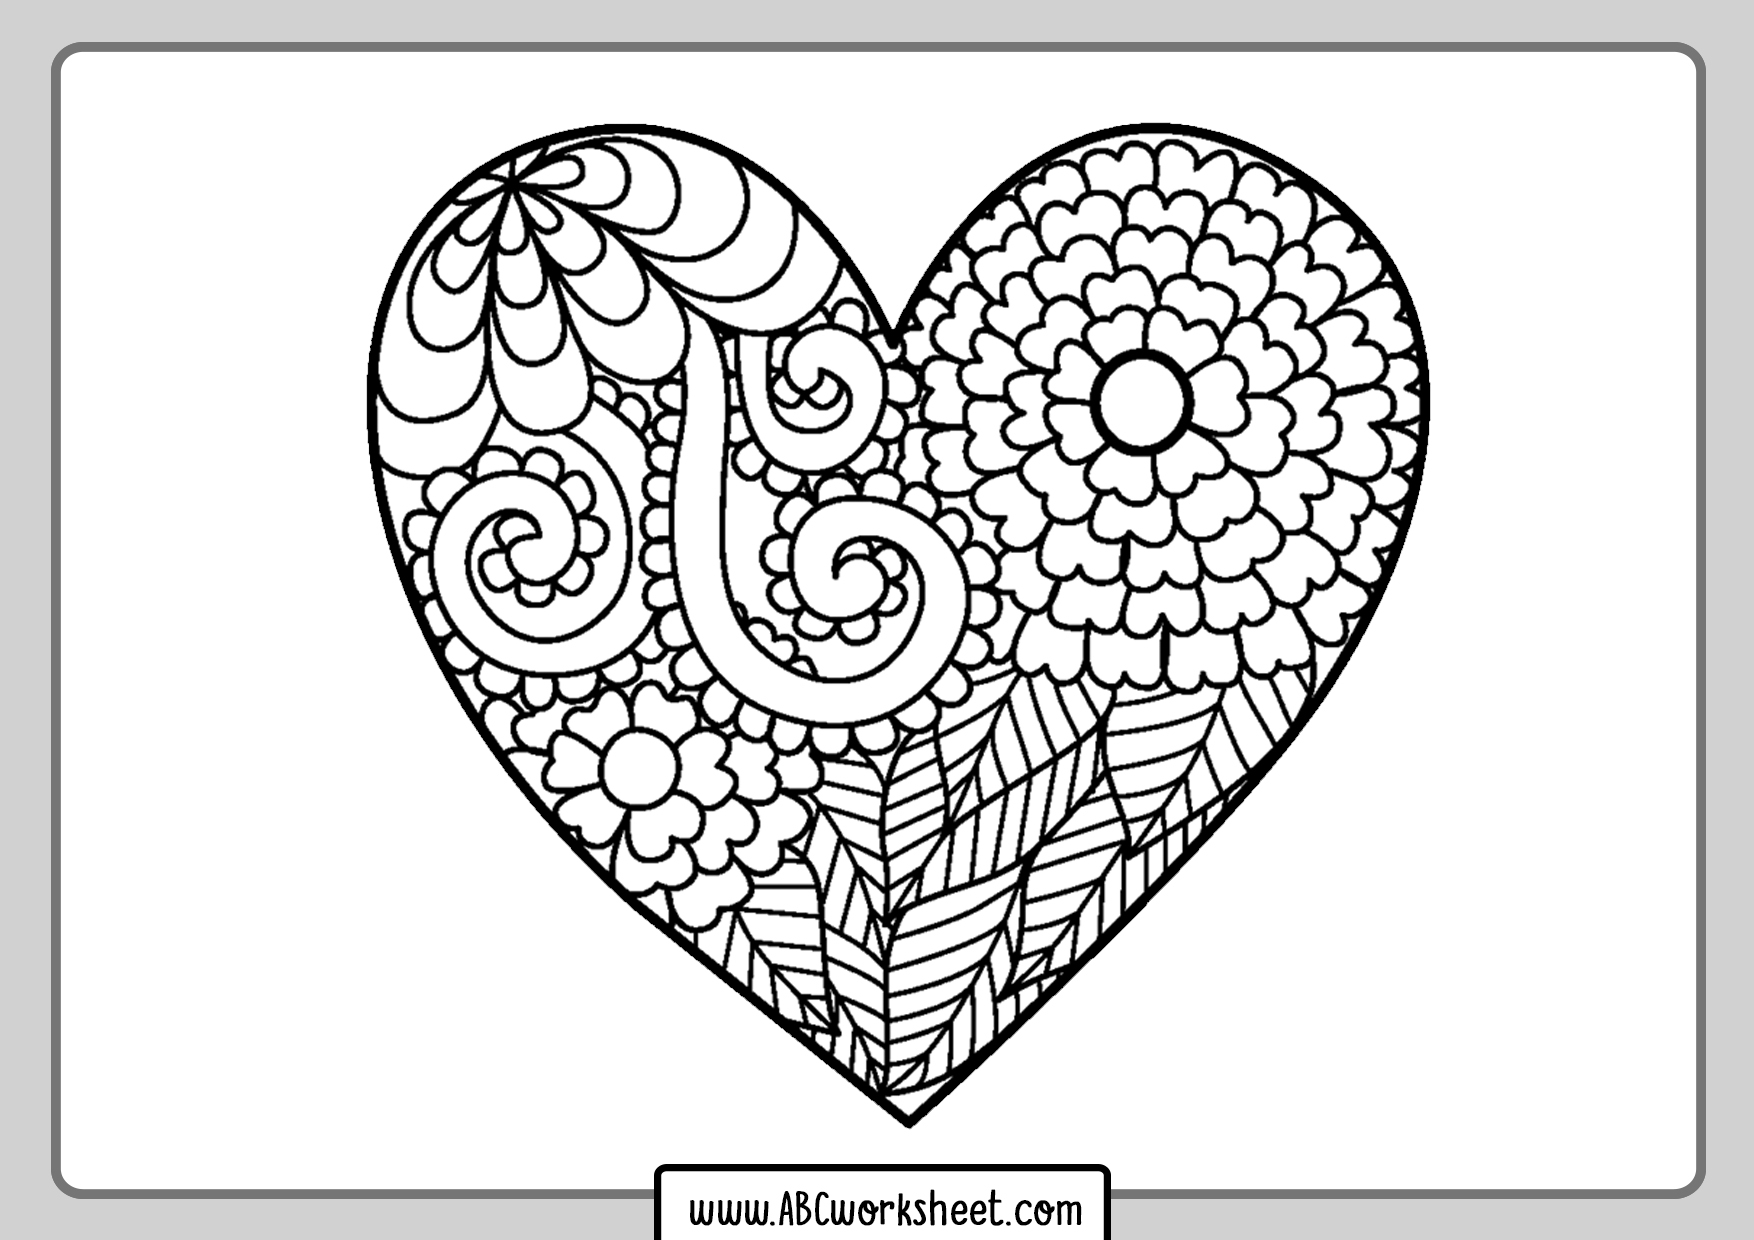 heart coloring worksheet heart worksheet color trace connect draw supplyme coloring heart worksheet